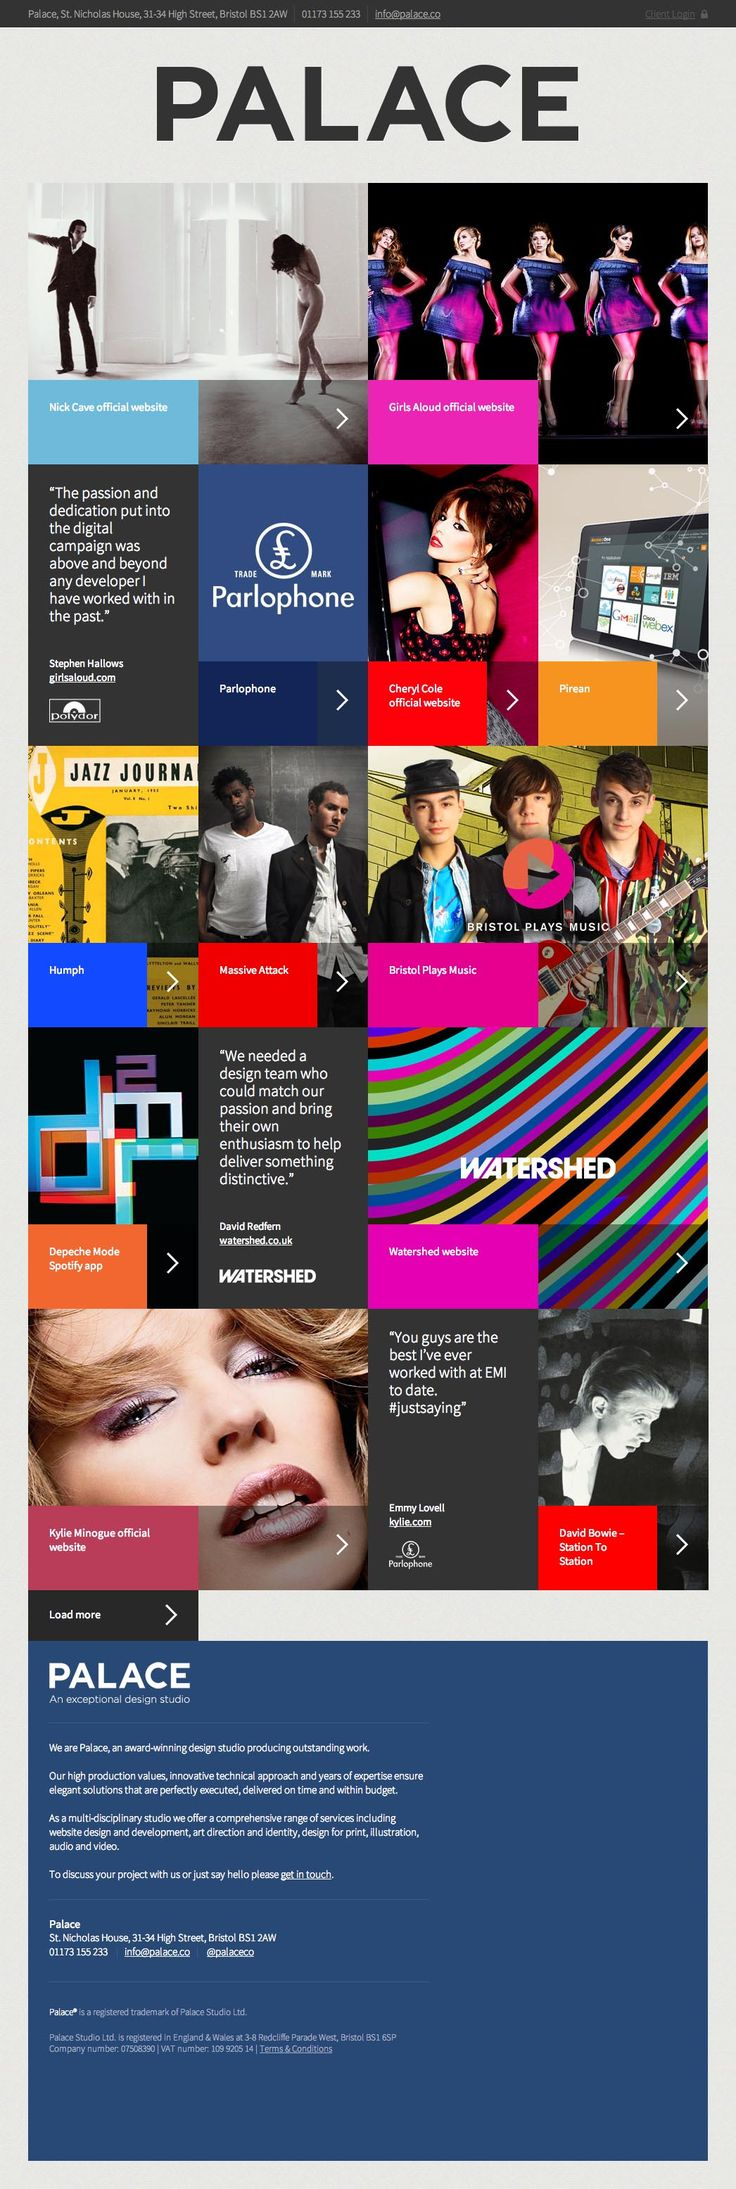 Website of the award-winning design studio Palace which is slick, elegant and responsive - designed by Palace, UK